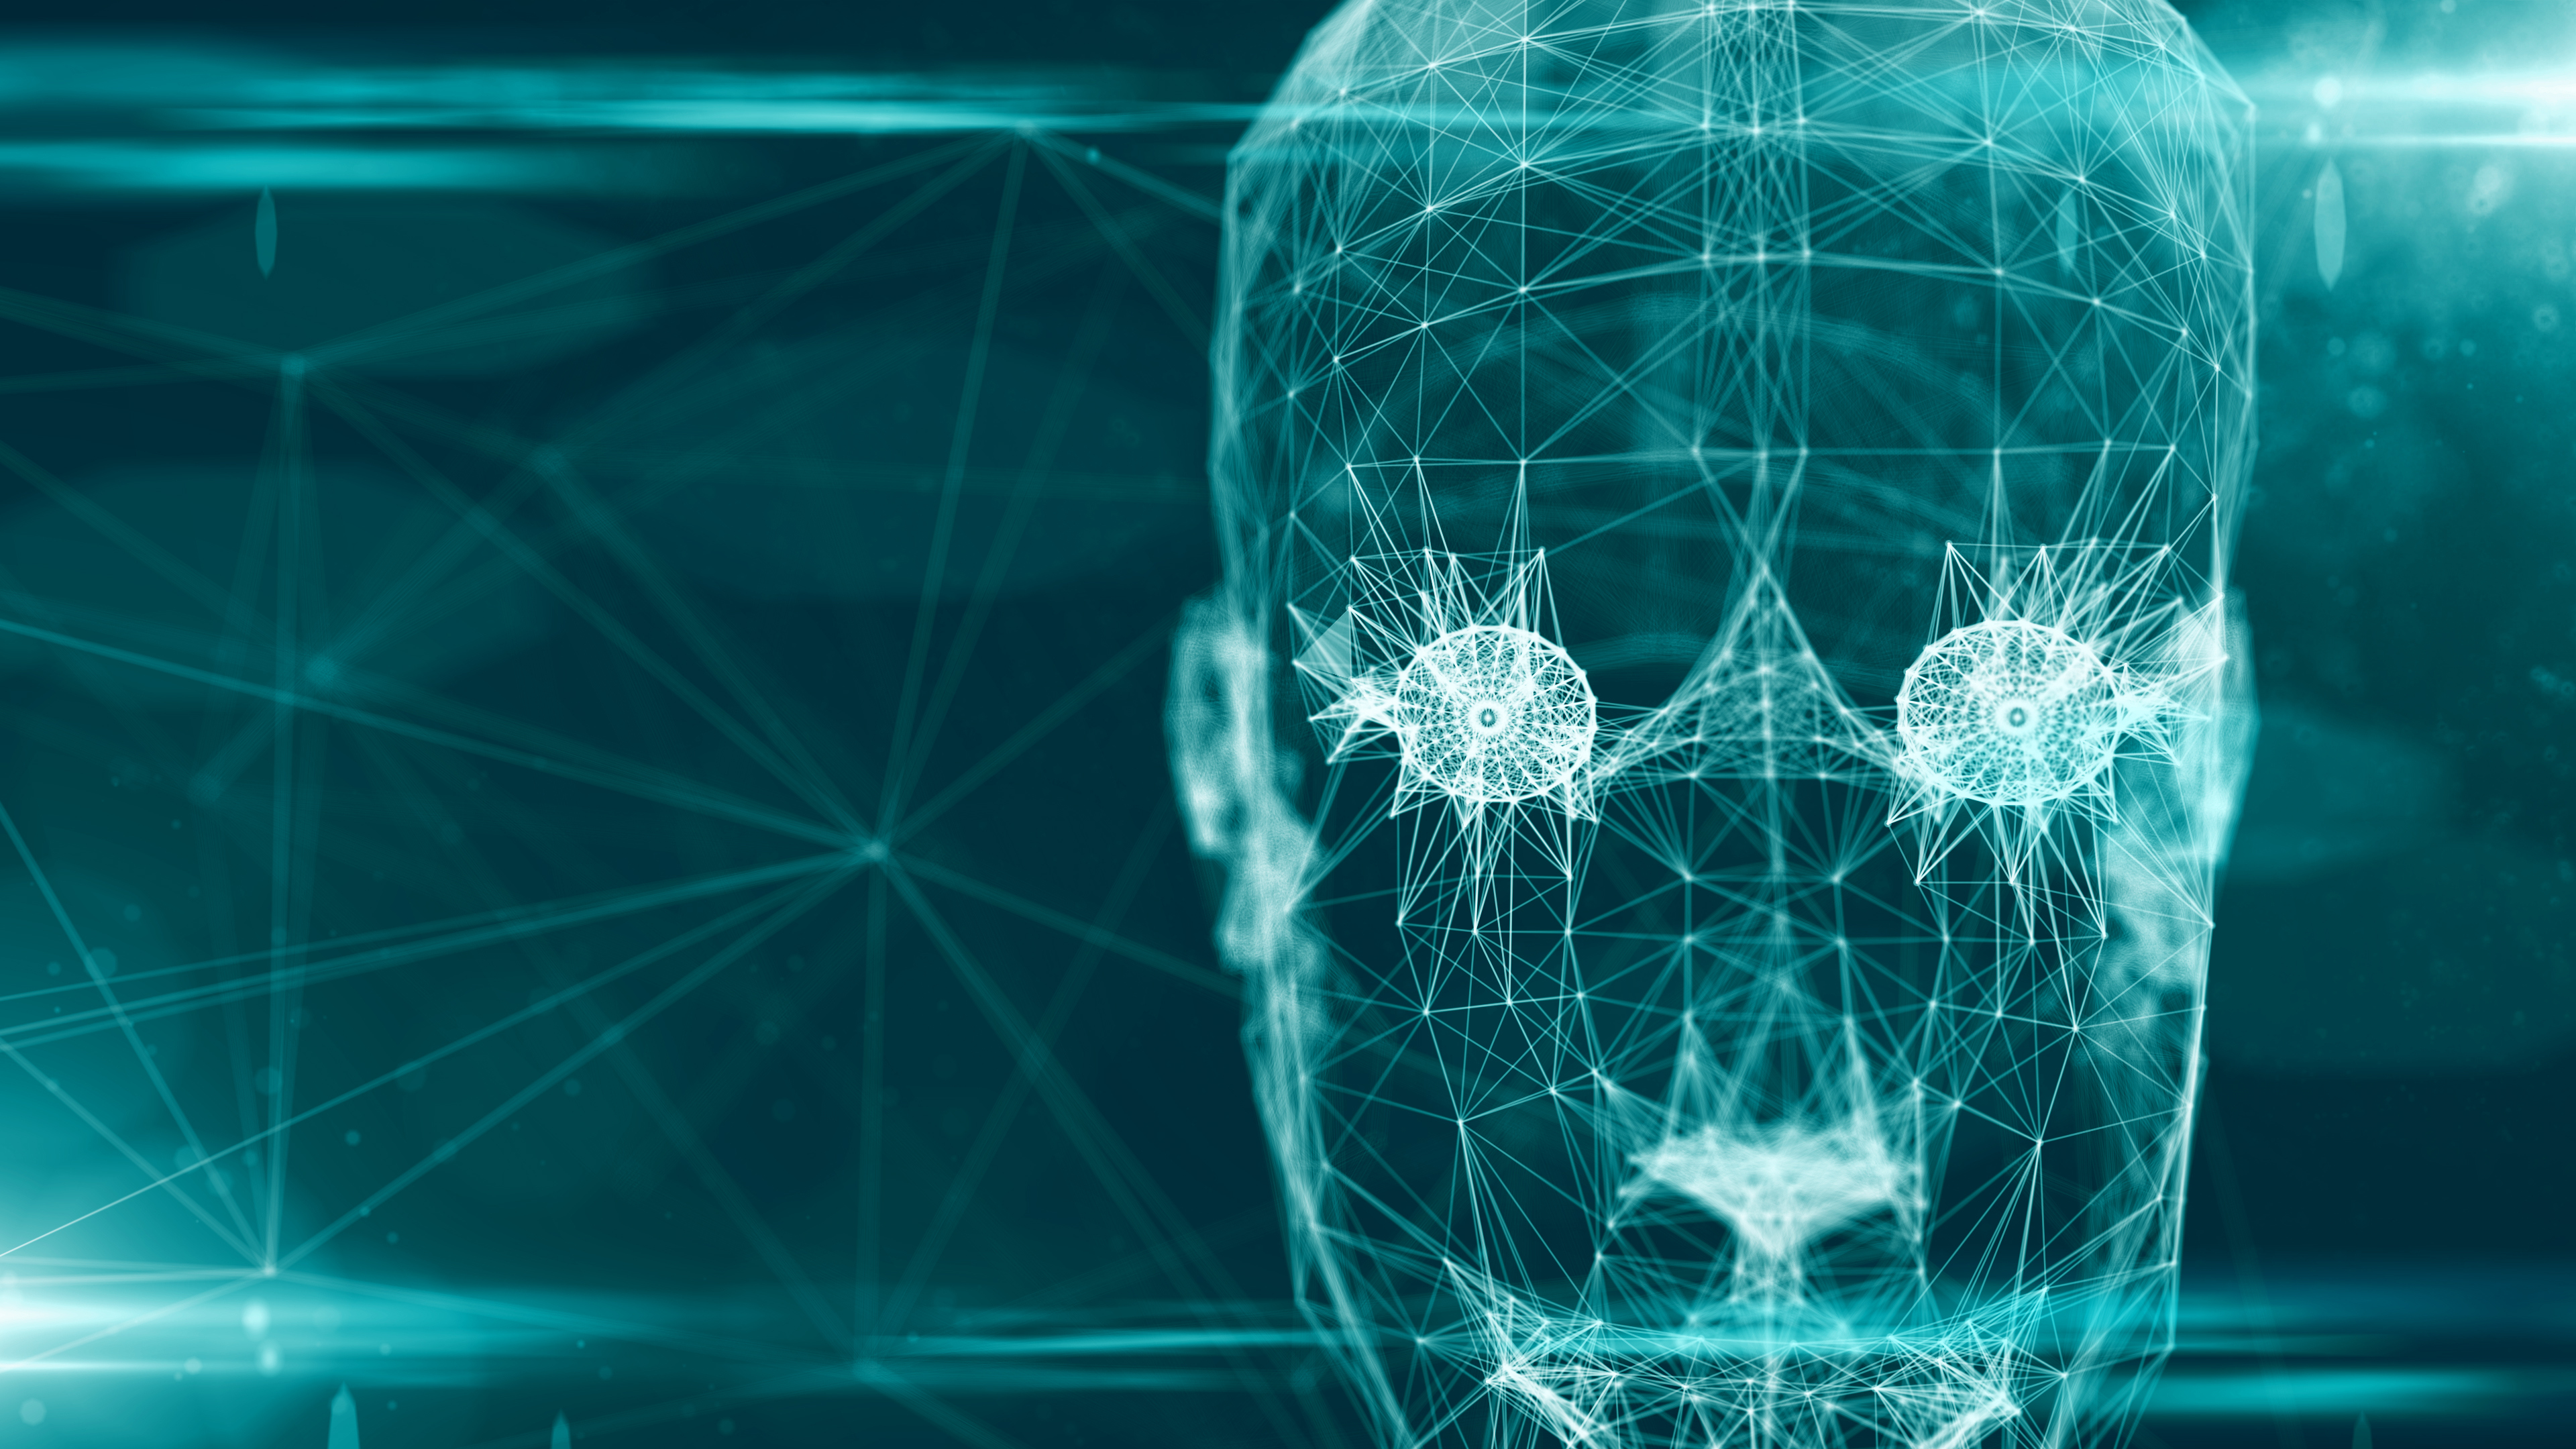 5 Applications of Artificial Intelligence in Real Life